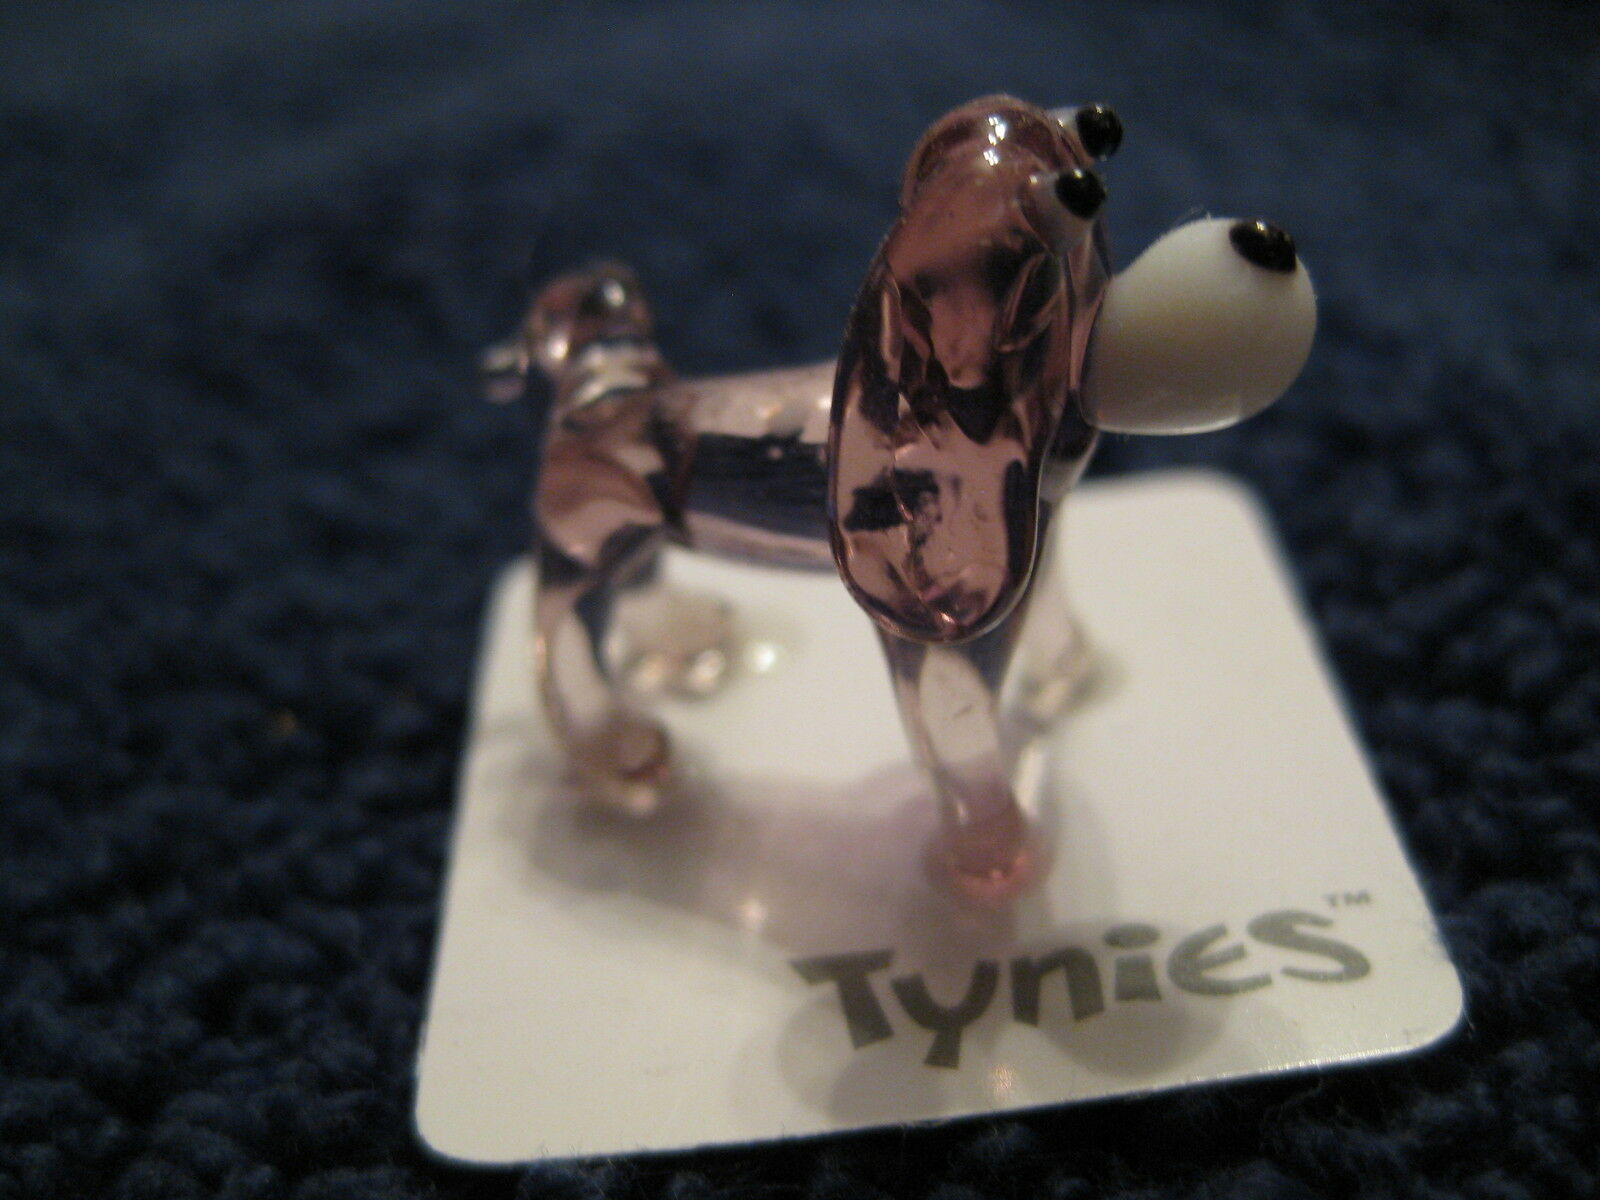 YIP PURPLE DOG TYNIES Tiny Glass Figure Figurines Collectibles NEW 0035